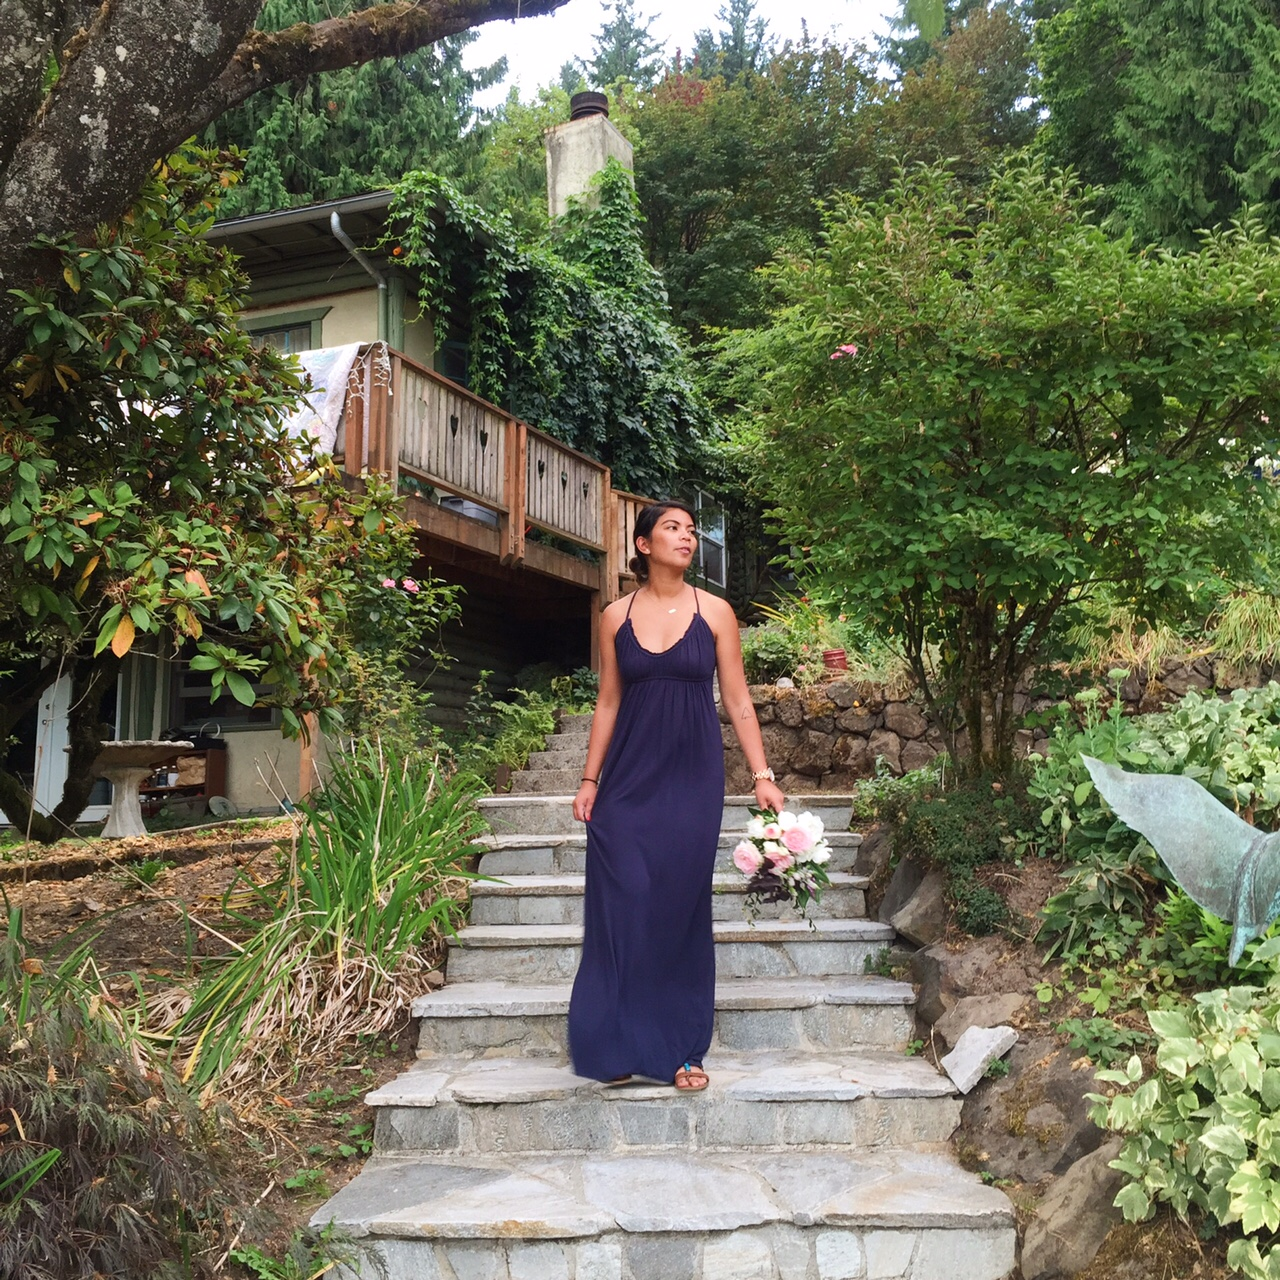 navy blue maxi dress, thrift finds, value village, the ptown girls, affordable  fashion, thirty bucks, portland blogger, oregon blogger, fblogger, fashion blogger, ootd, fashion diaries, blog post, outfit post